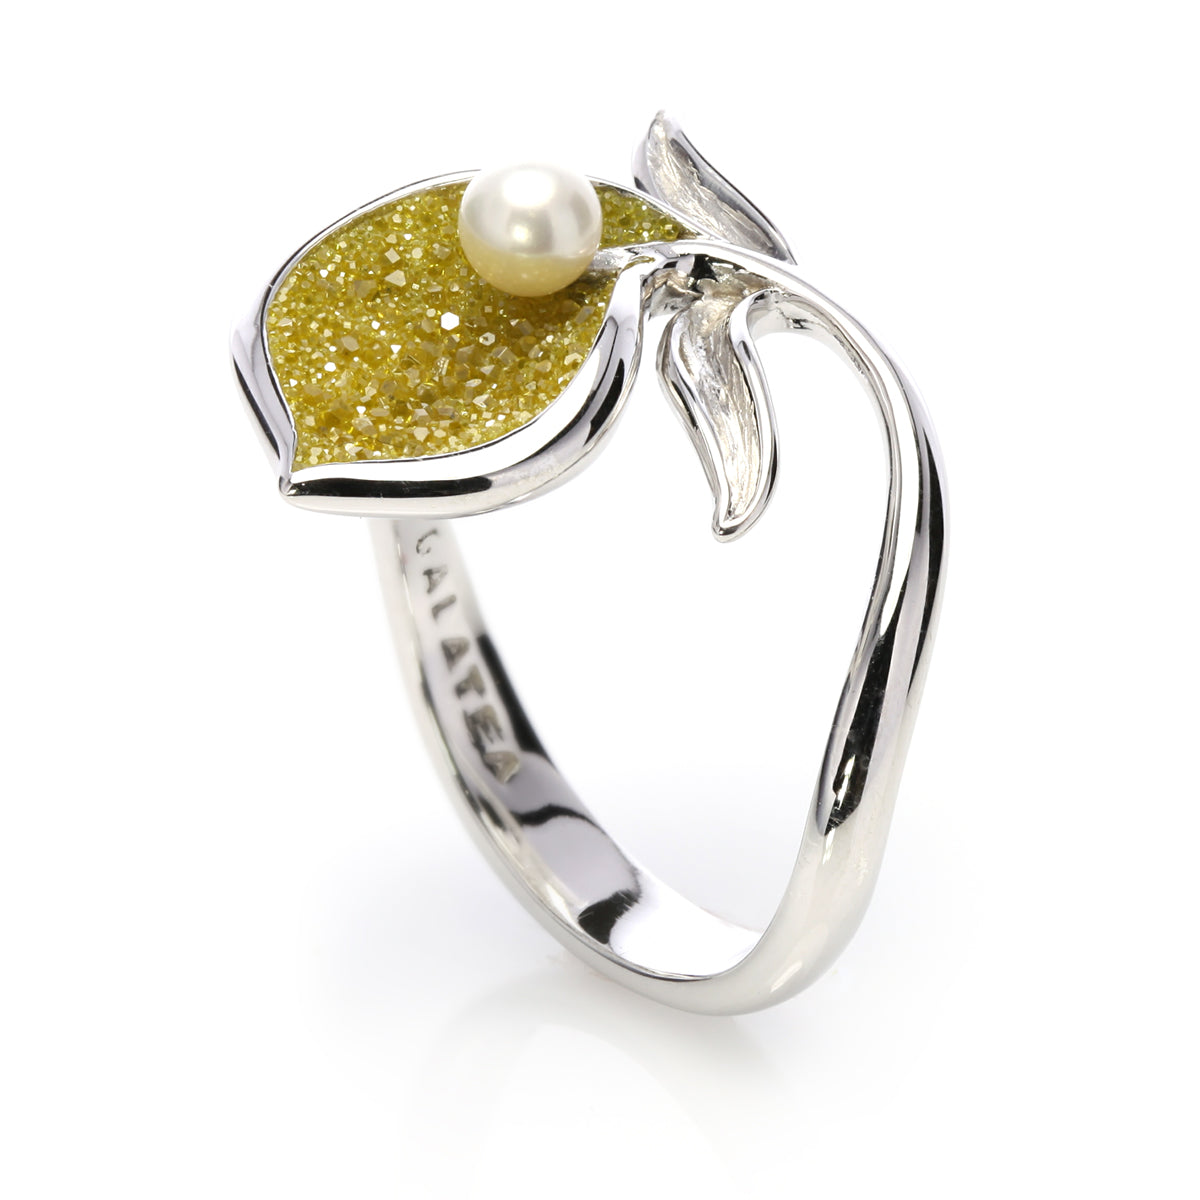 Crushed Yellow Diamonds, Pearl and Sterling Lily Ring